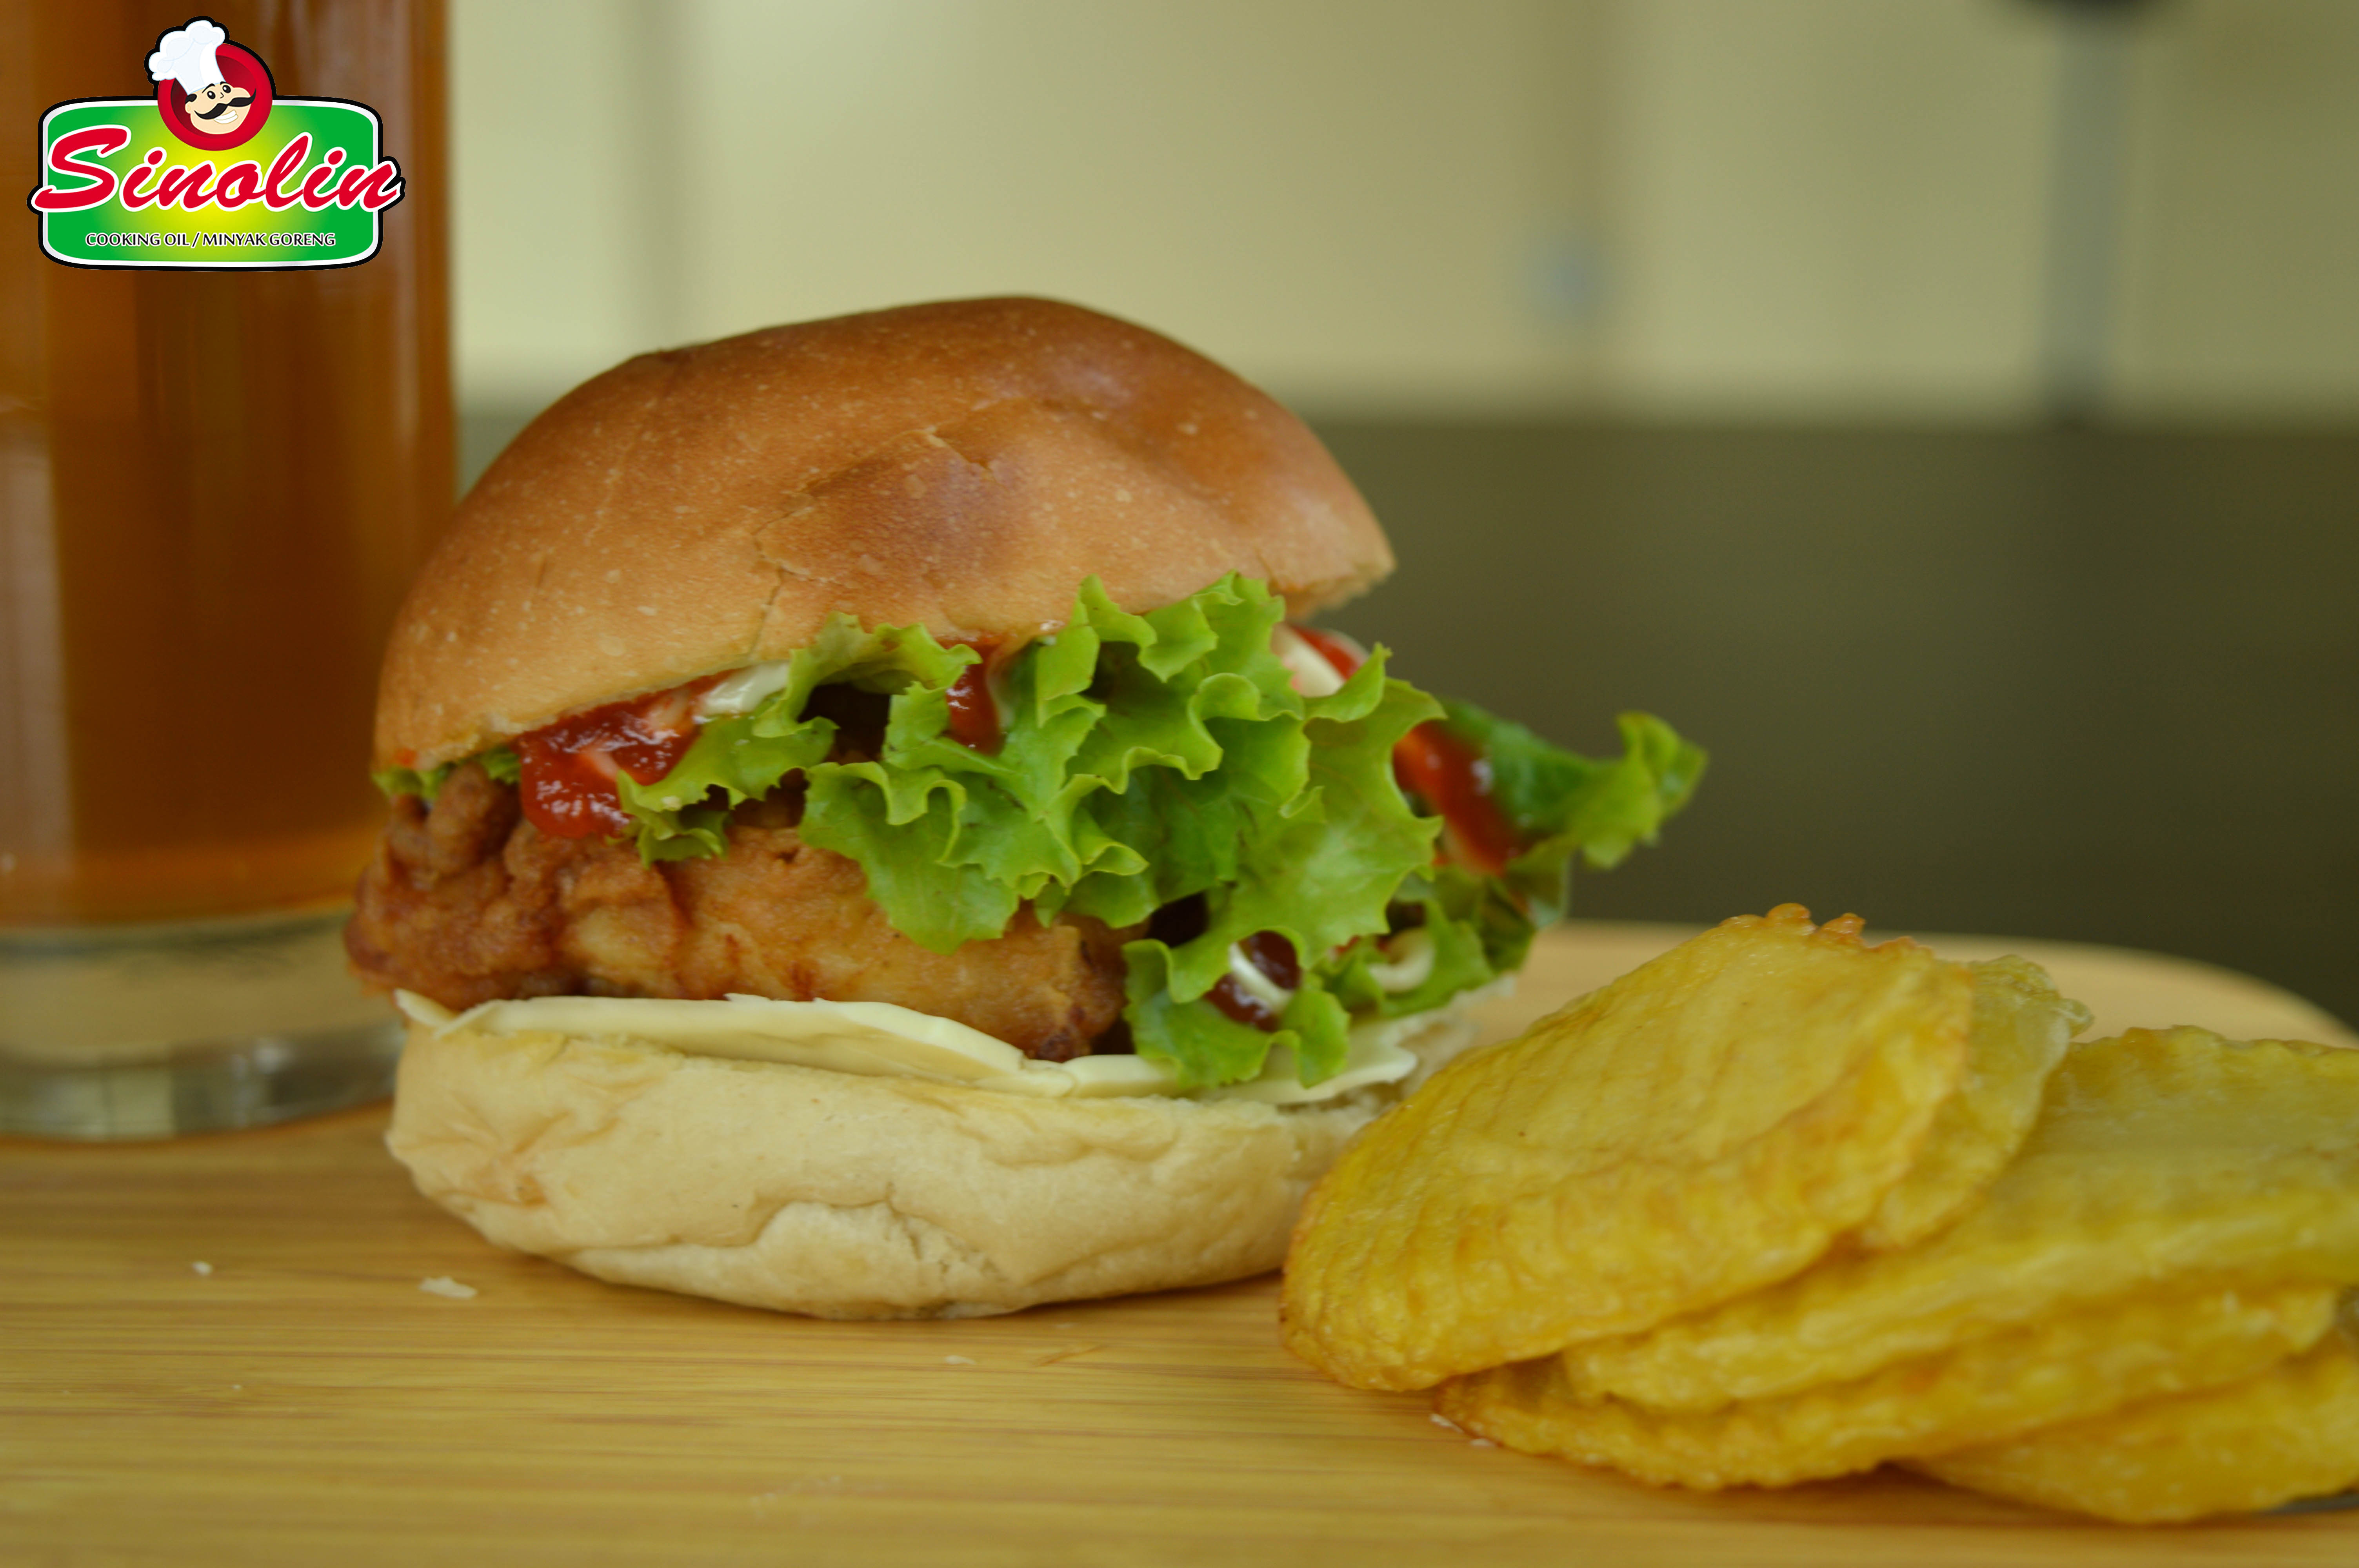 Chicken Sandwich by Dapur Sinolin